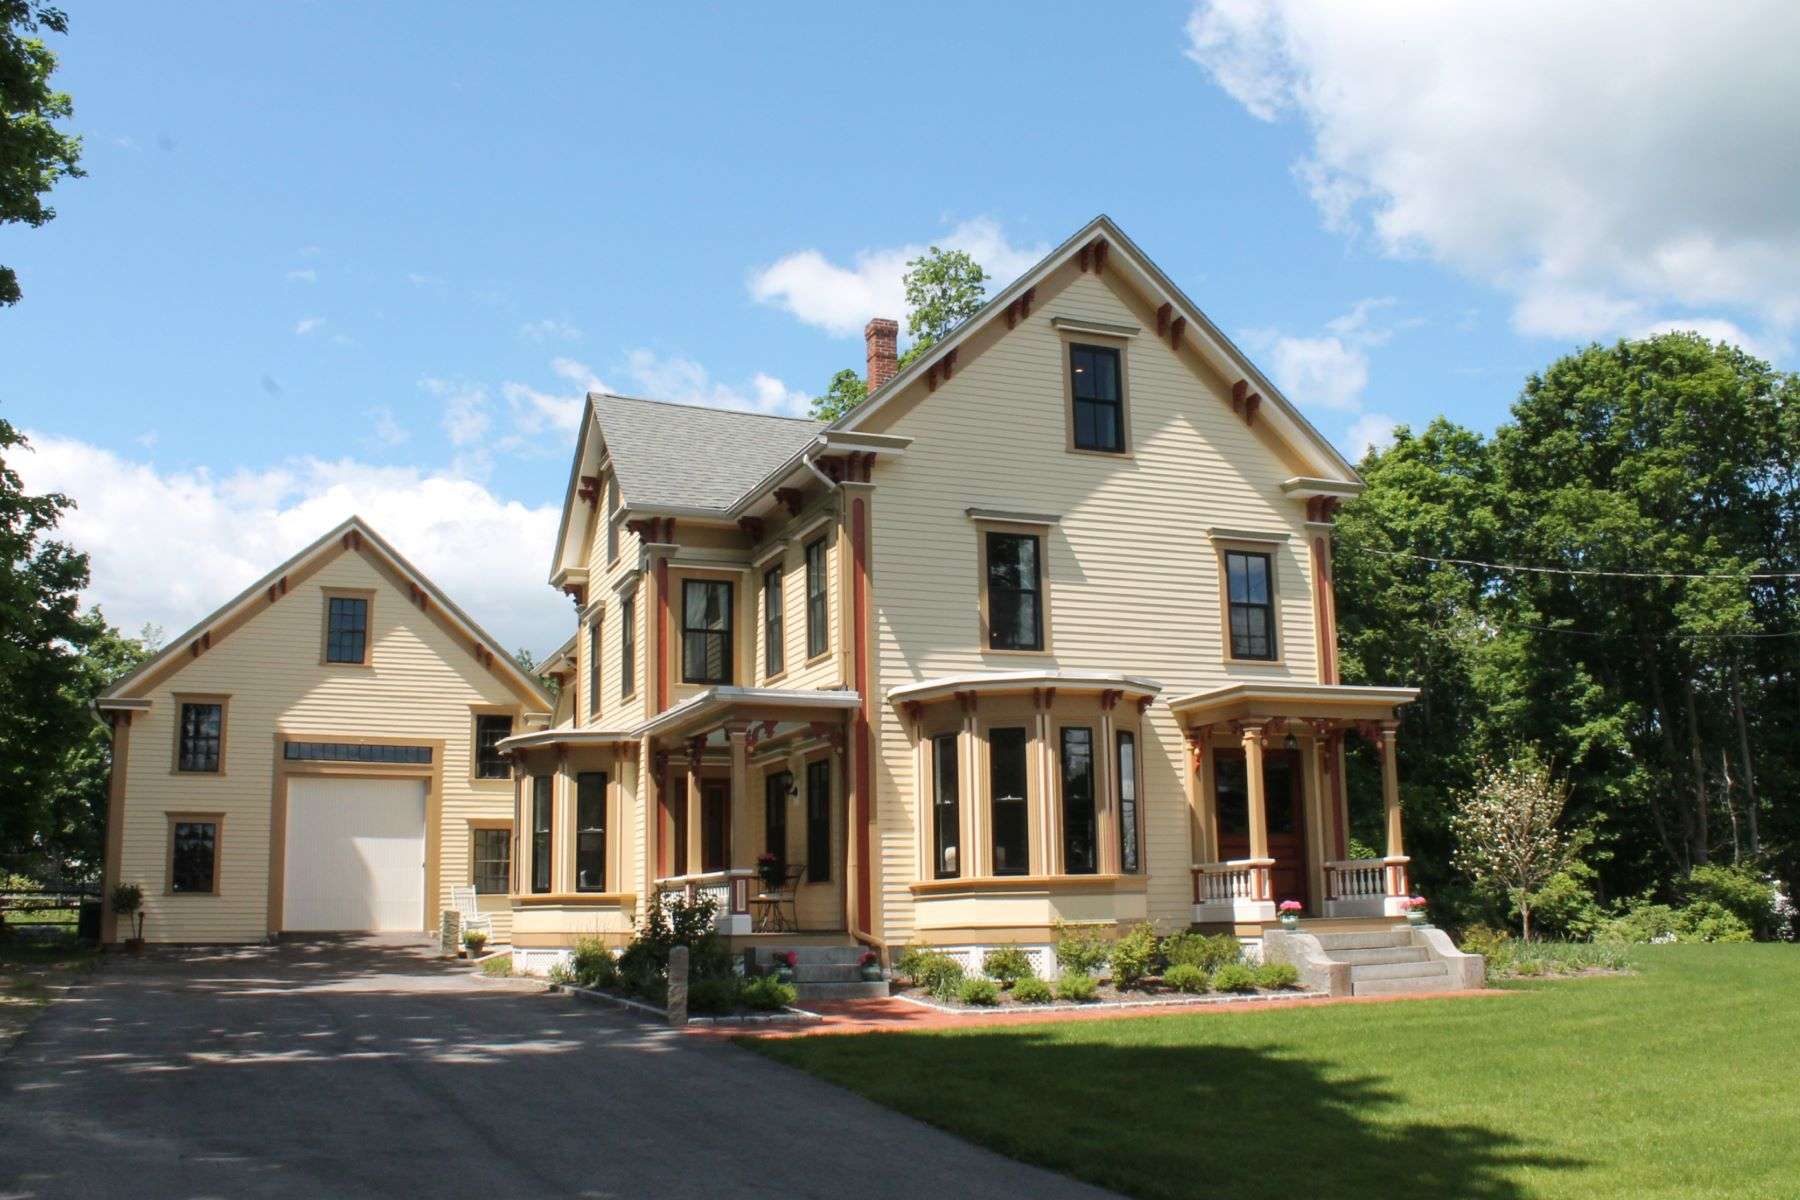 Single Family Home for Sale at Meticulously Restored and Renovated! 4 Graniteville Road Westford, 01886 United States